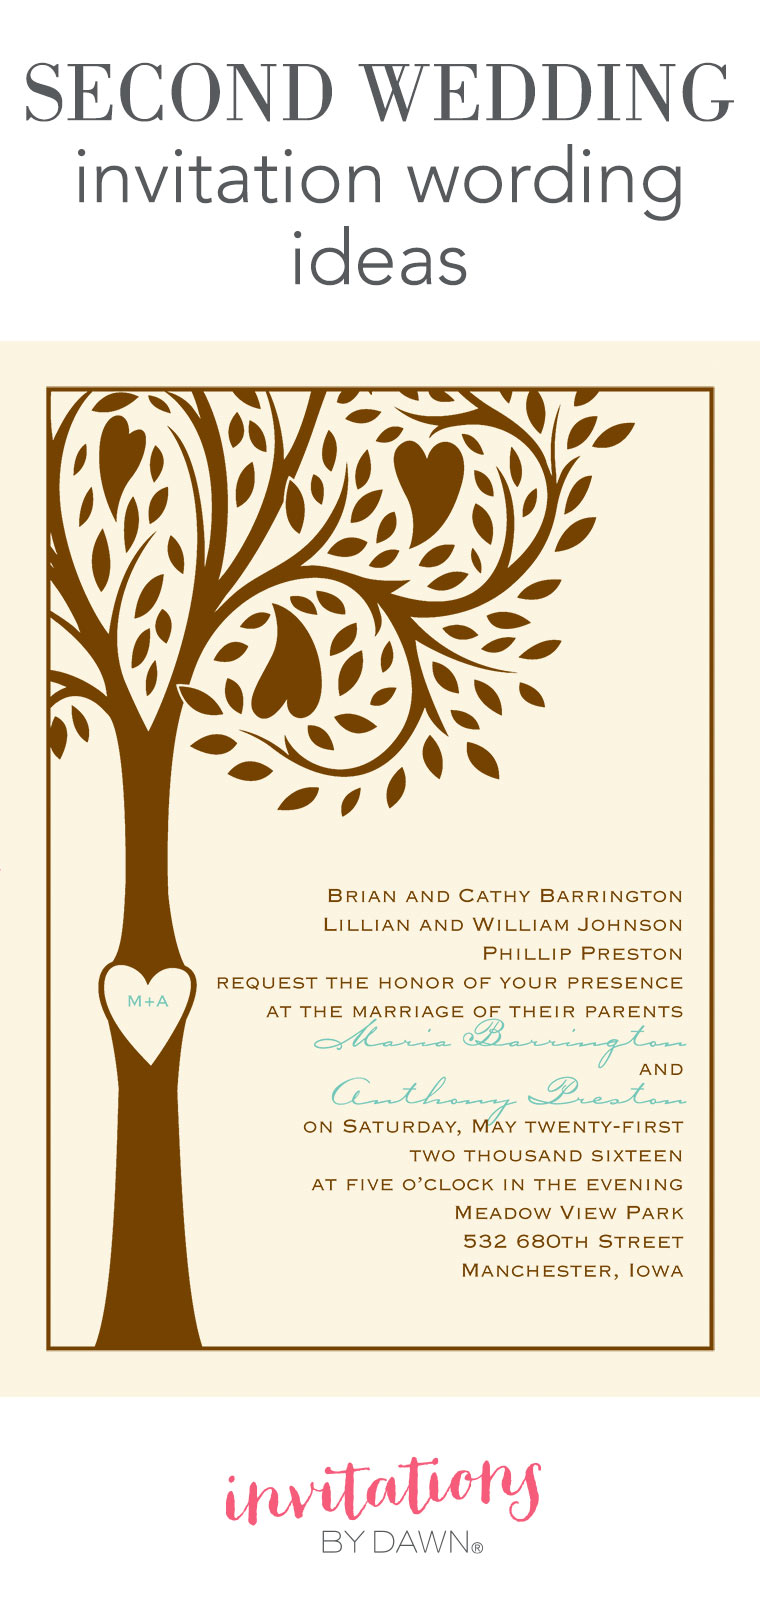 dawn-a-second-wedding-invitation-wording-main-042216.jpg